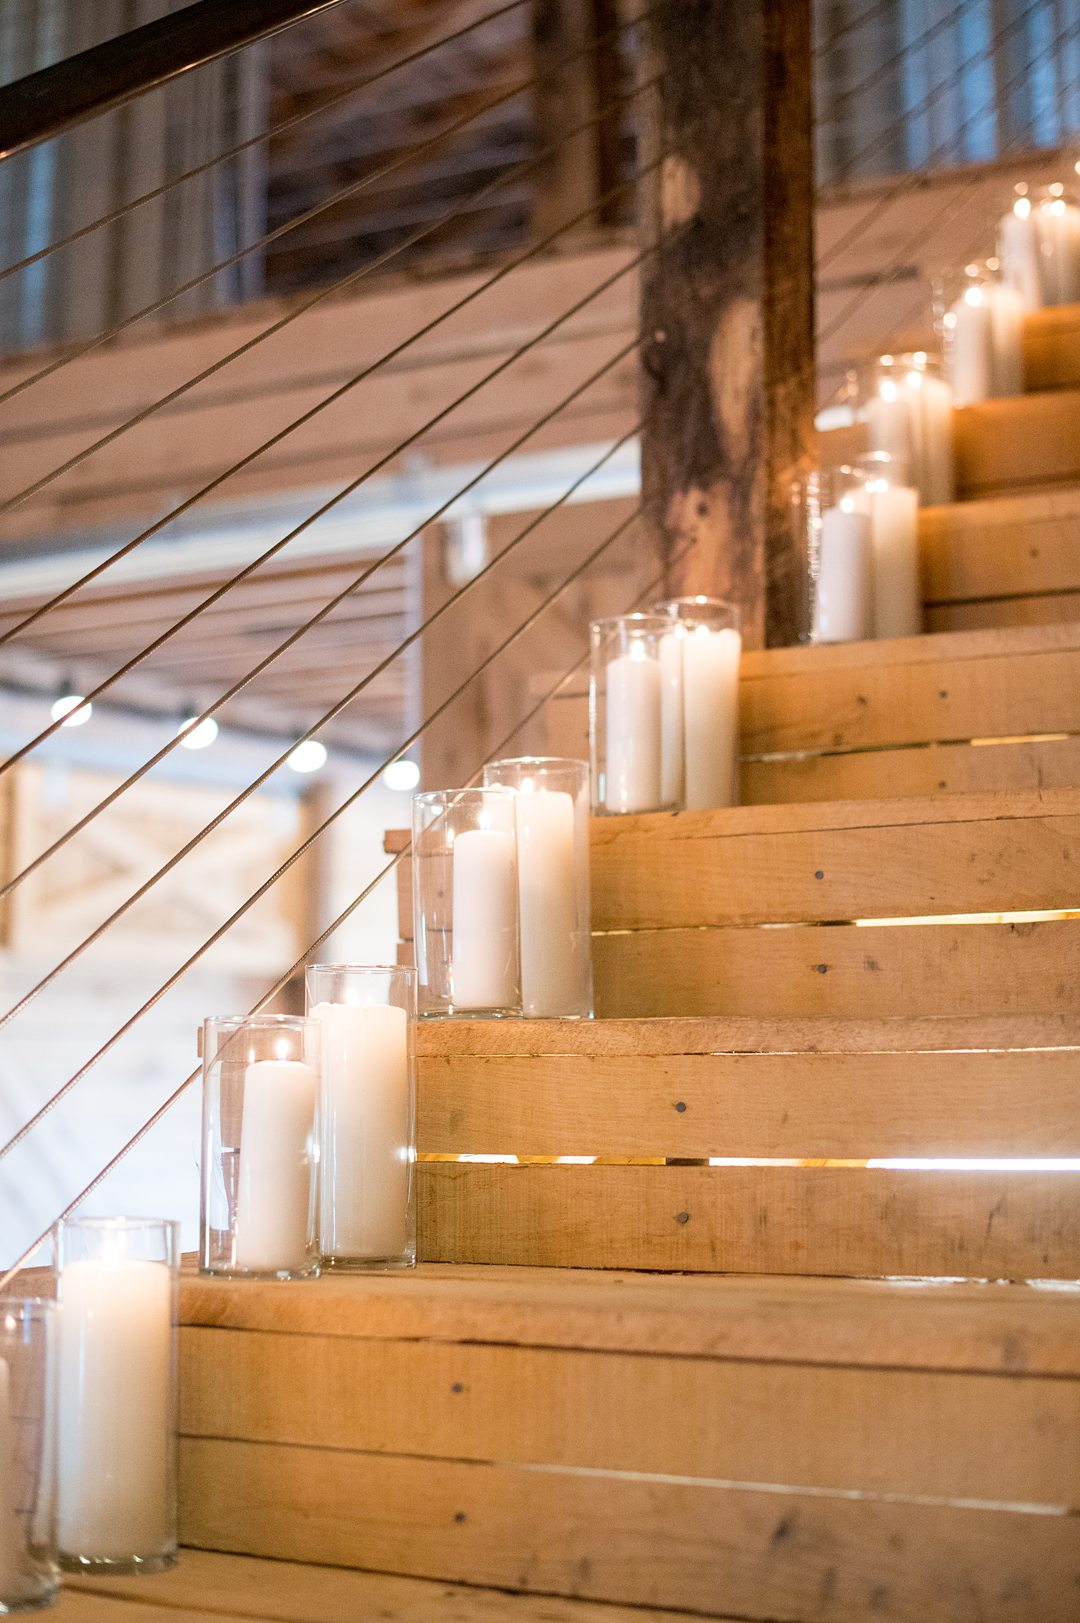 Candles lined the stairs at a small wedding reception at The Lodge at Mount Ida Farm in Charlottesville, VA. Photos by Mikkel Paige Photography. #mikkelpaige #charlottesvillewedding #CharlottesvilleVA #MountaIdaFarm #weddingreception